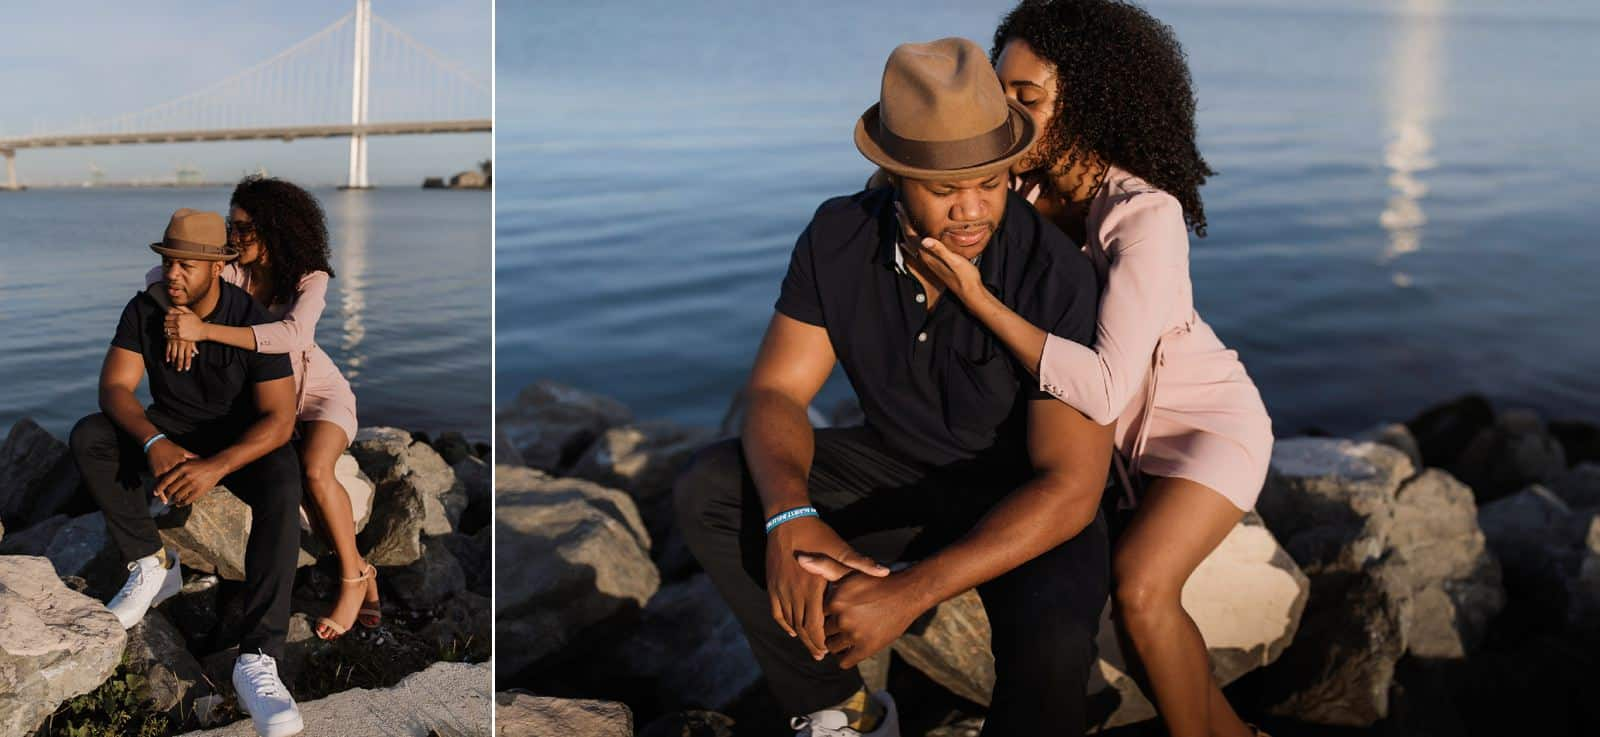 treasure-island-bay-area-engagement-shoot-11